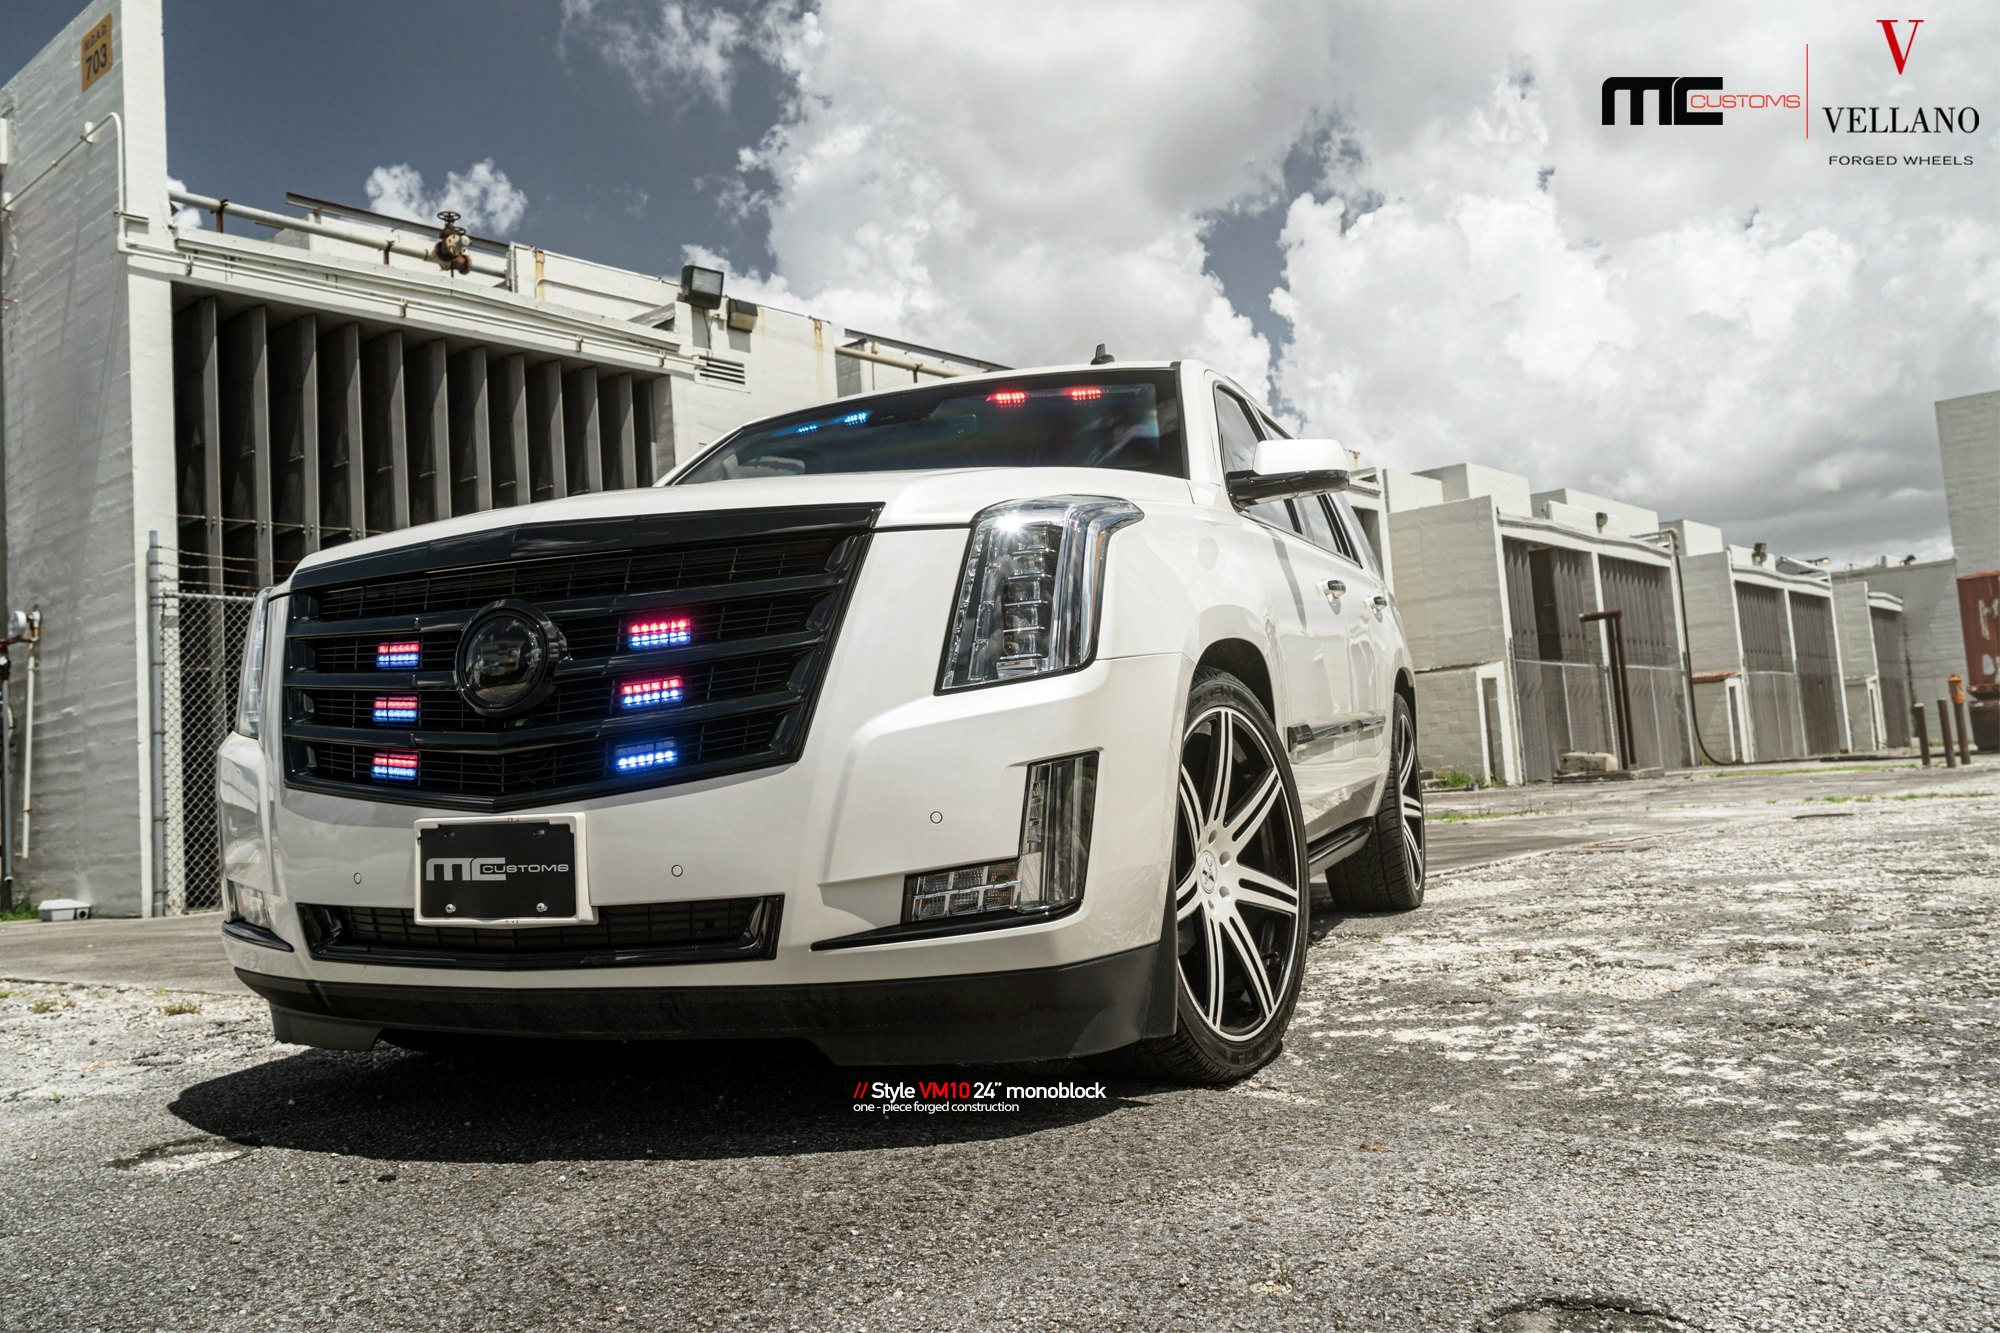 hight resolution of custom front bumper on white cadillac escalade photo by vellano